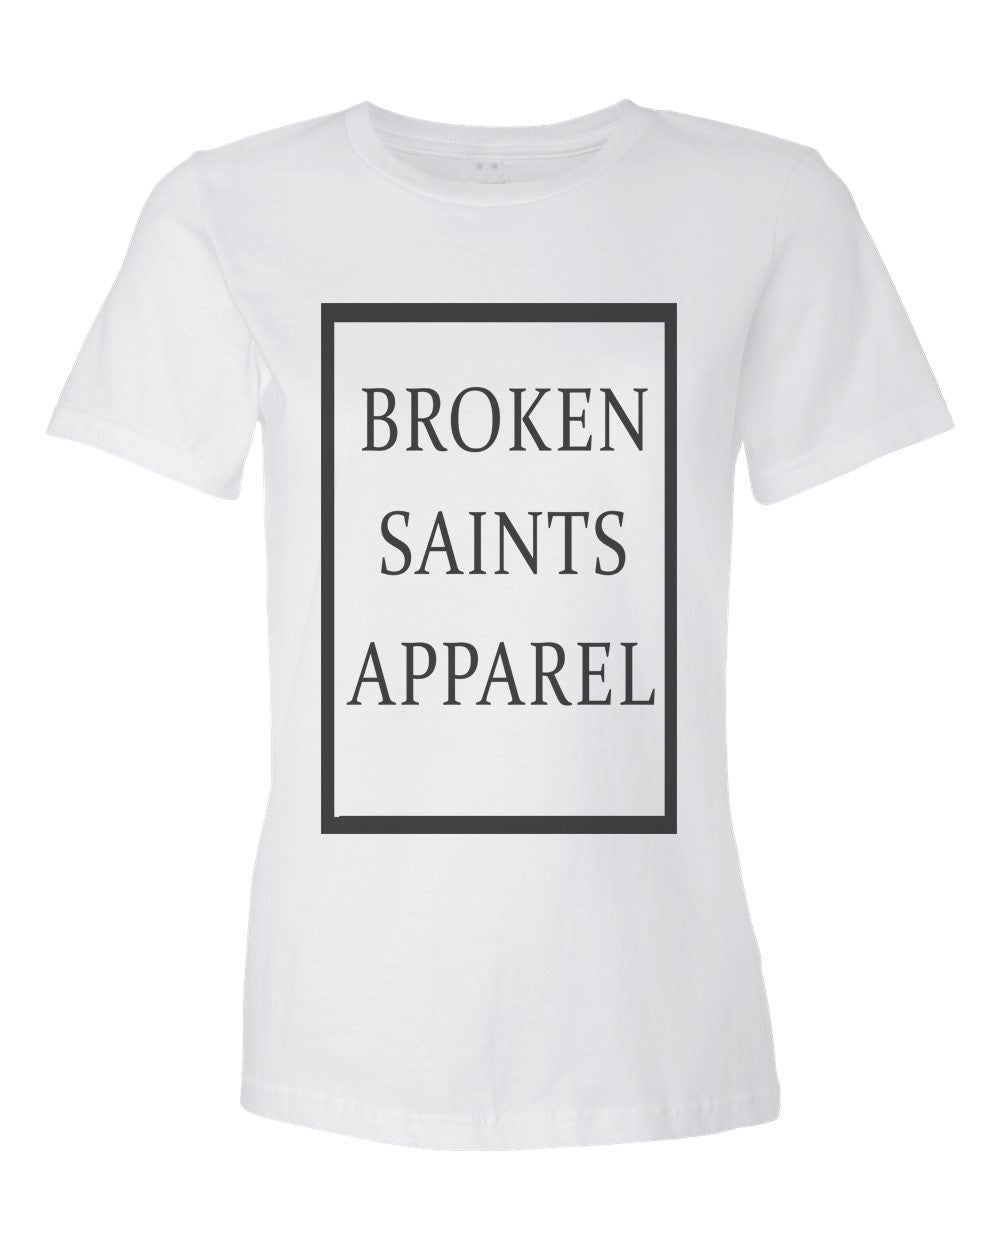 Broken Saints Apparel Box Ladies Tee